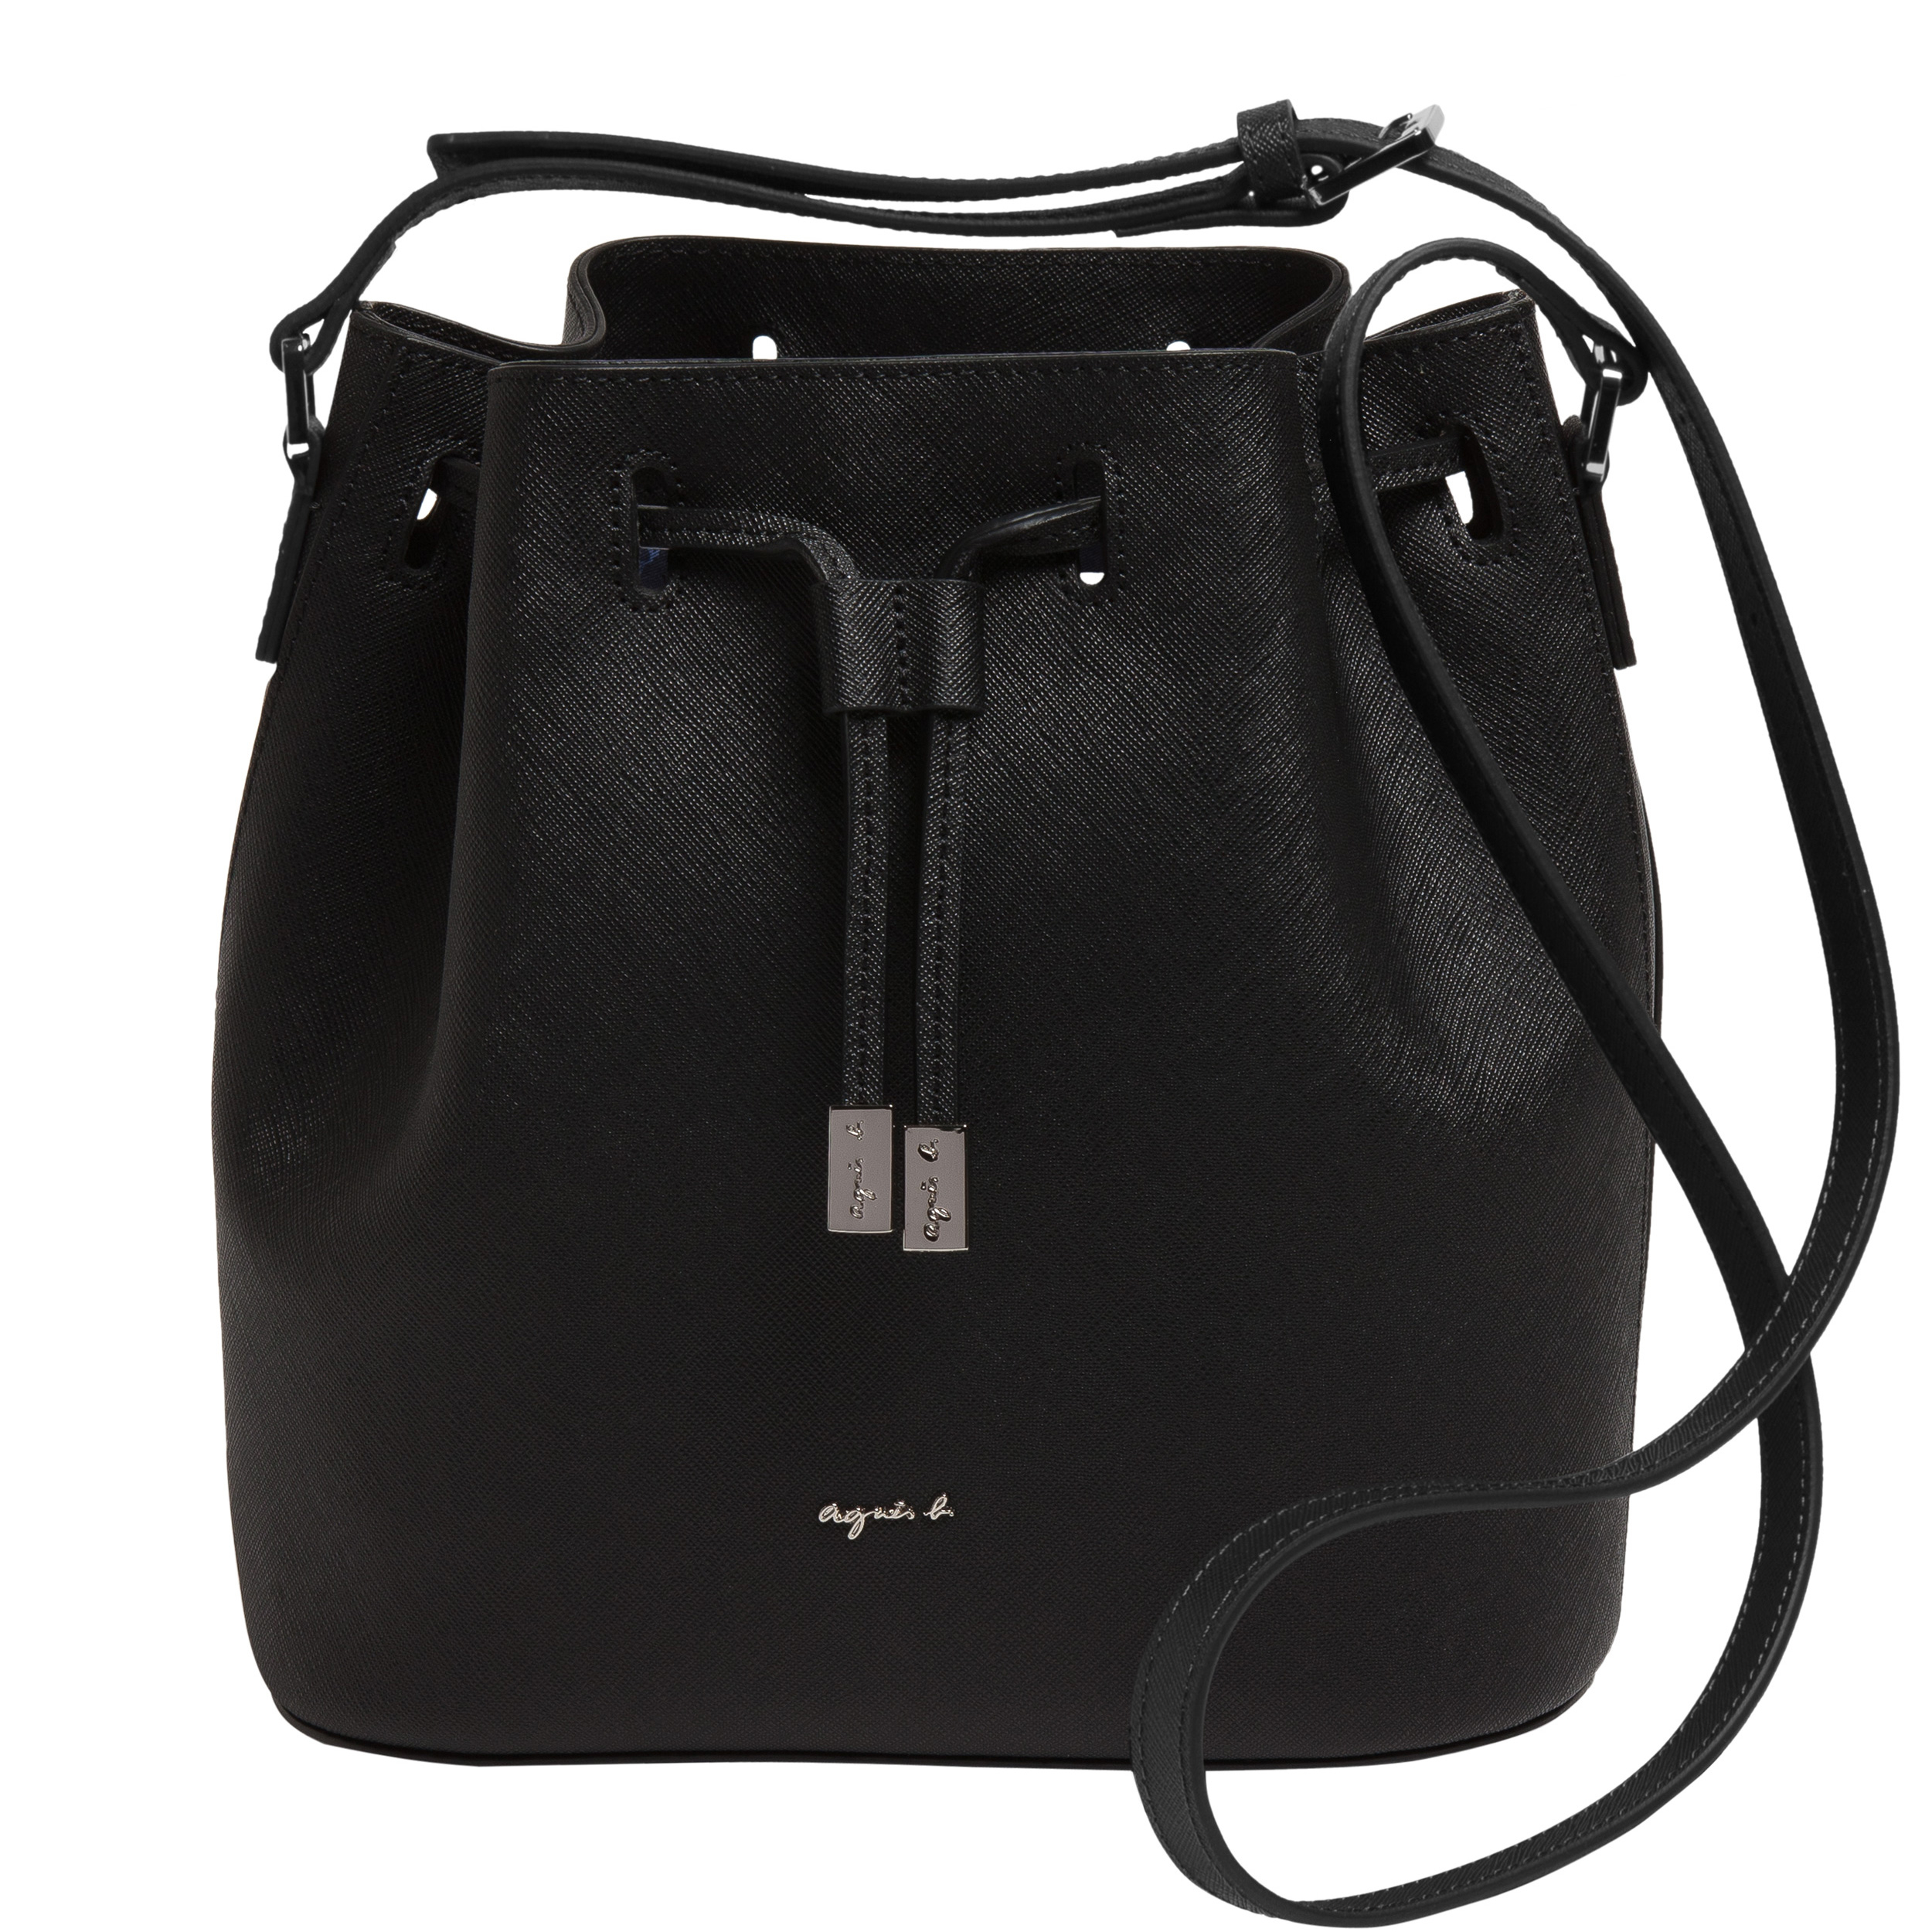 Rebecca Minkoff is an industry leader in accessible luxury handbags, accessories, footwear, and apparel. Shop the official online store.